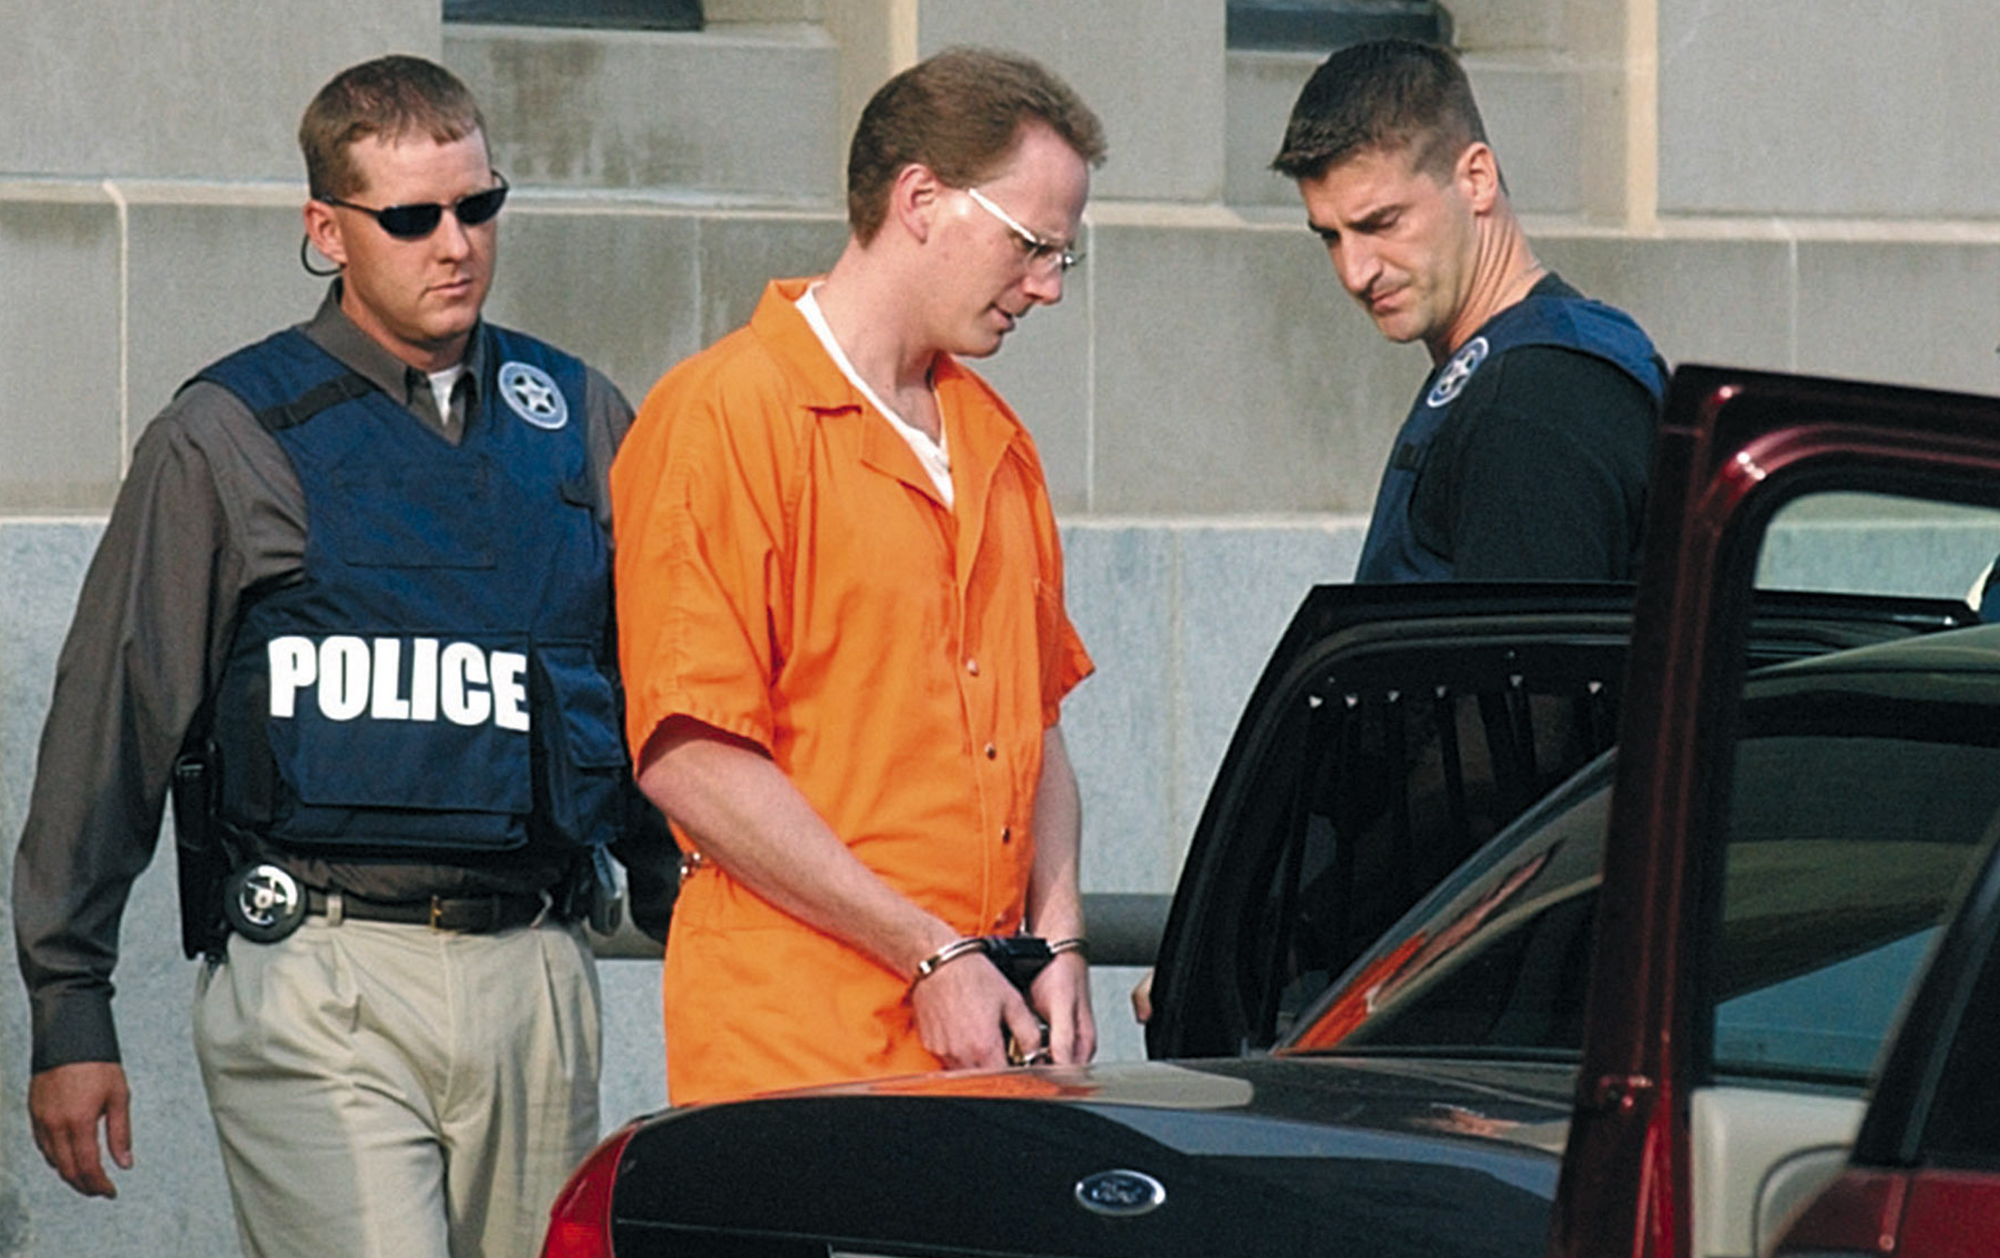 In this Aug. 18, 2004 file photo, Dustin Honken is led by federal marshals to a waiting car after the second day of jury selection in federal court in Sioux City, Iowa. (Tim Hynds / Sioux City Journal via Associated Press)